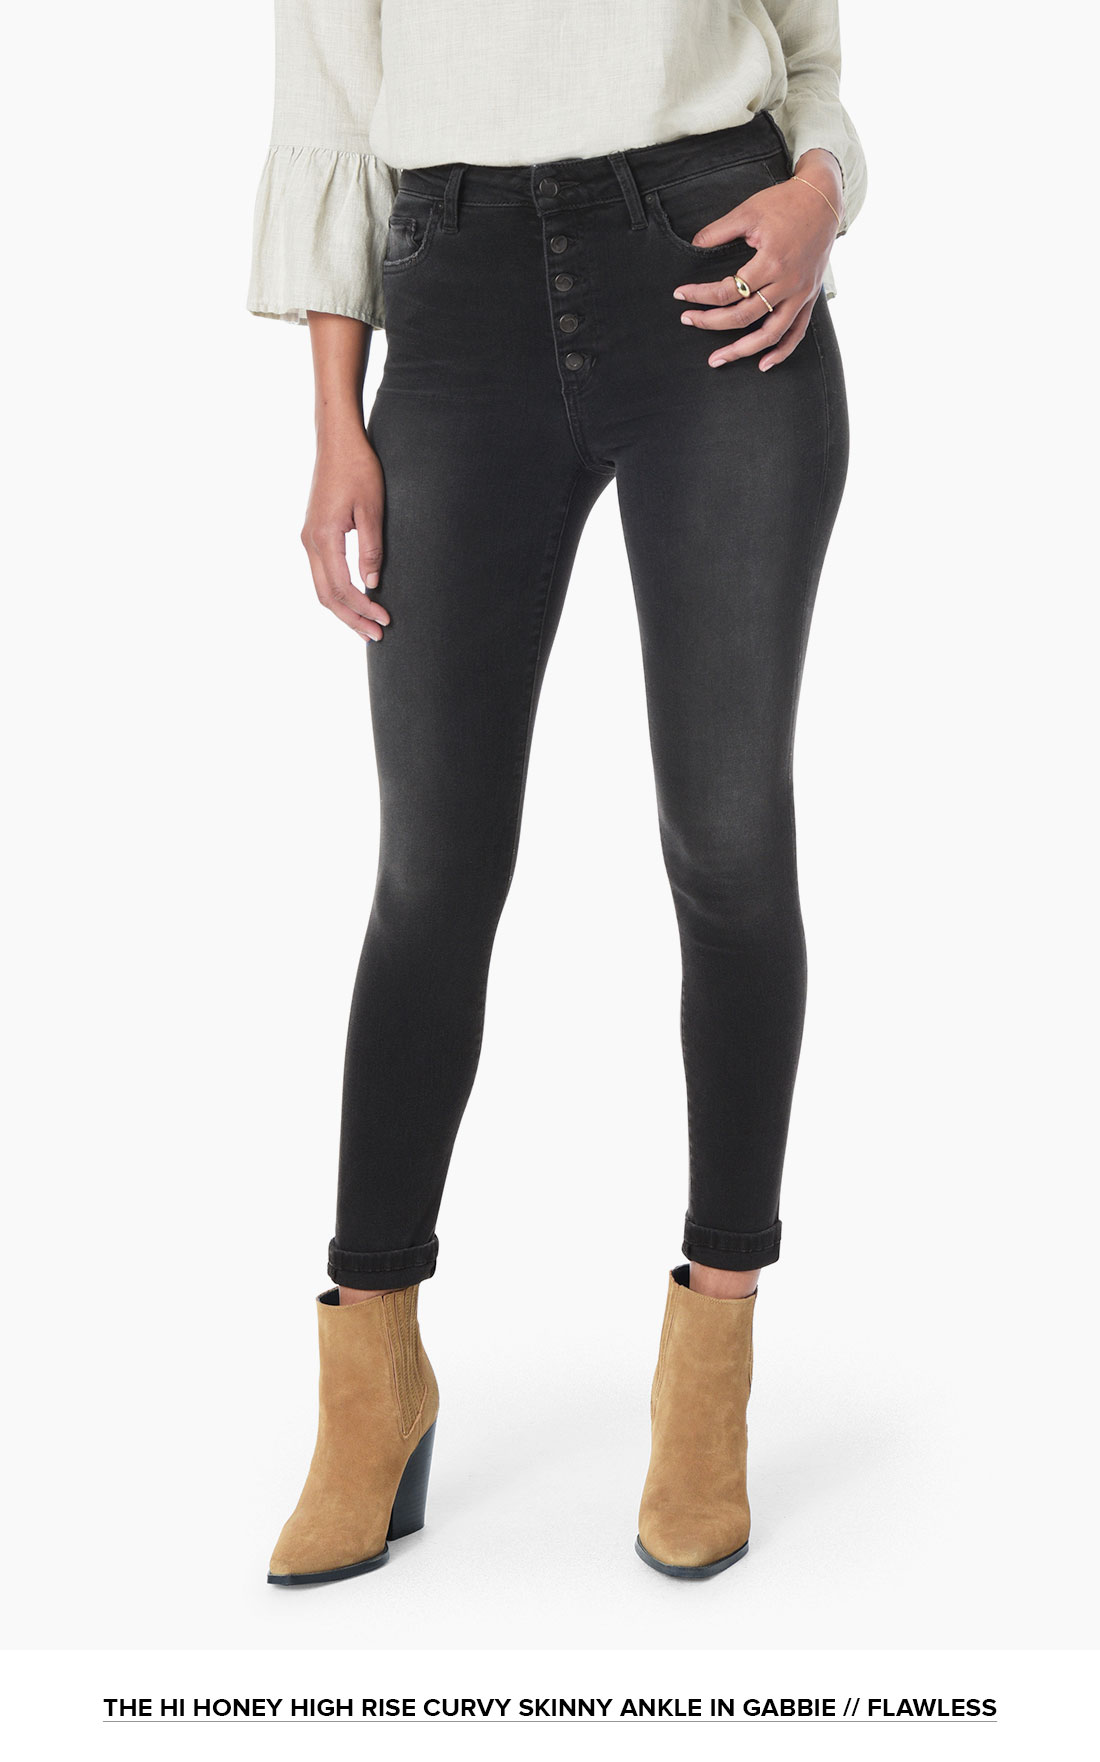 High Rise Curvy Skinny Ankle // Buttonfly // Flawless // Gabbie